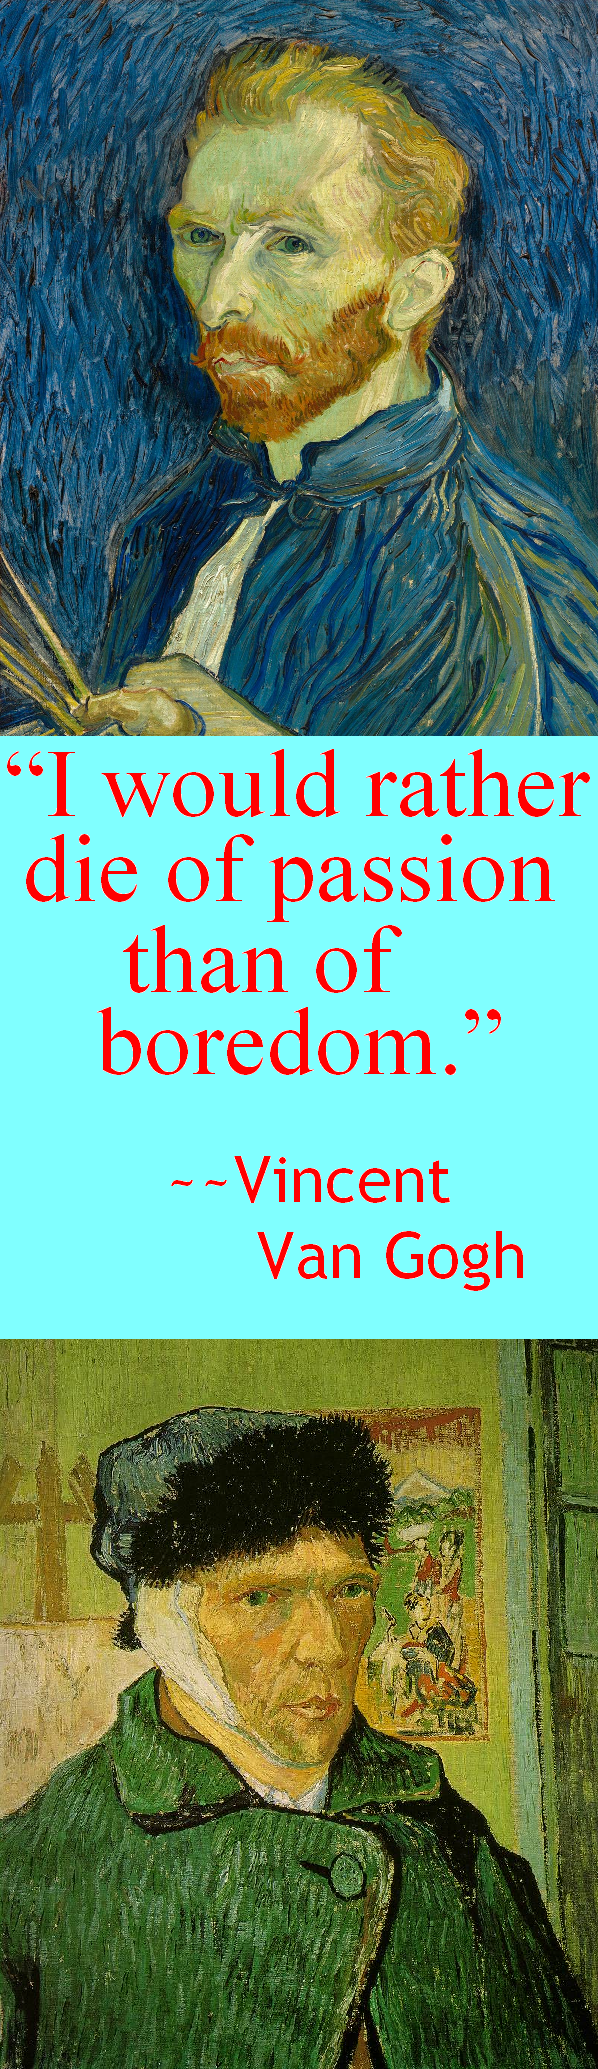 Vincent Van Gogh, On Death, Passion, and Boredom